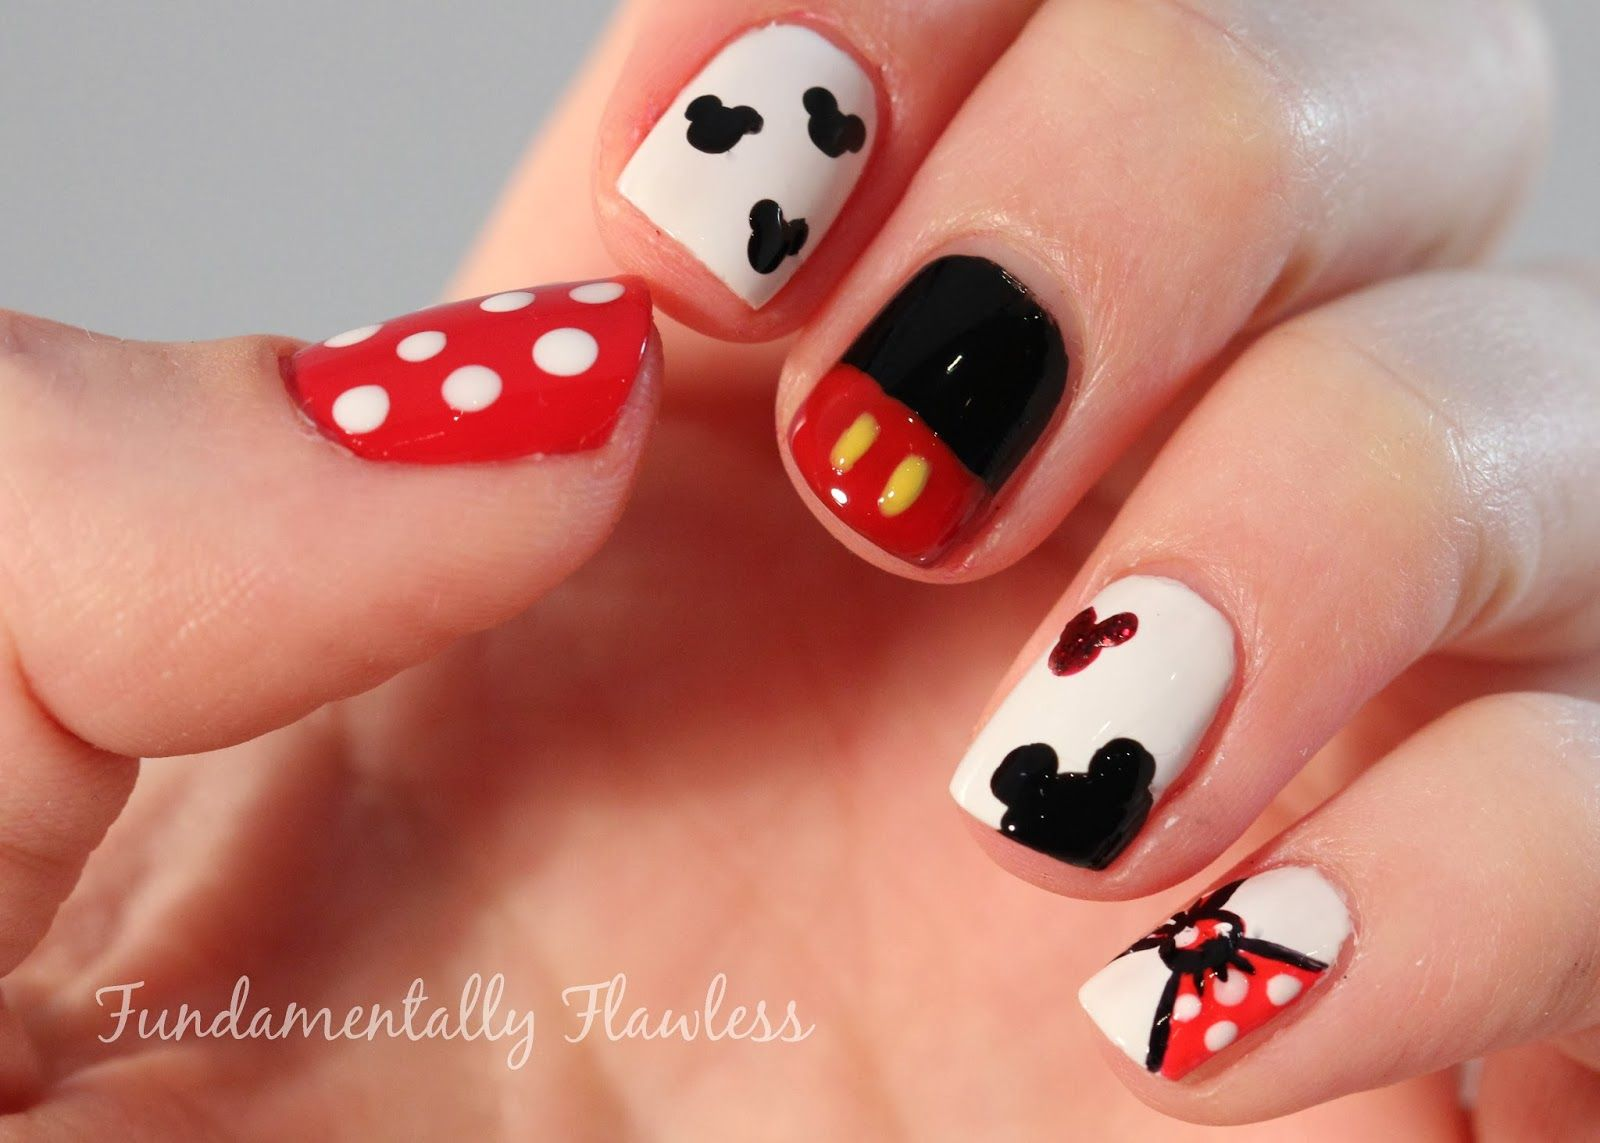 Party November Disney Micky Minnie Mouse Nail Art Simple Nail Design Ideas 1715762525 Mickey Mouse Nails Mickey Nails Nail Art Disney